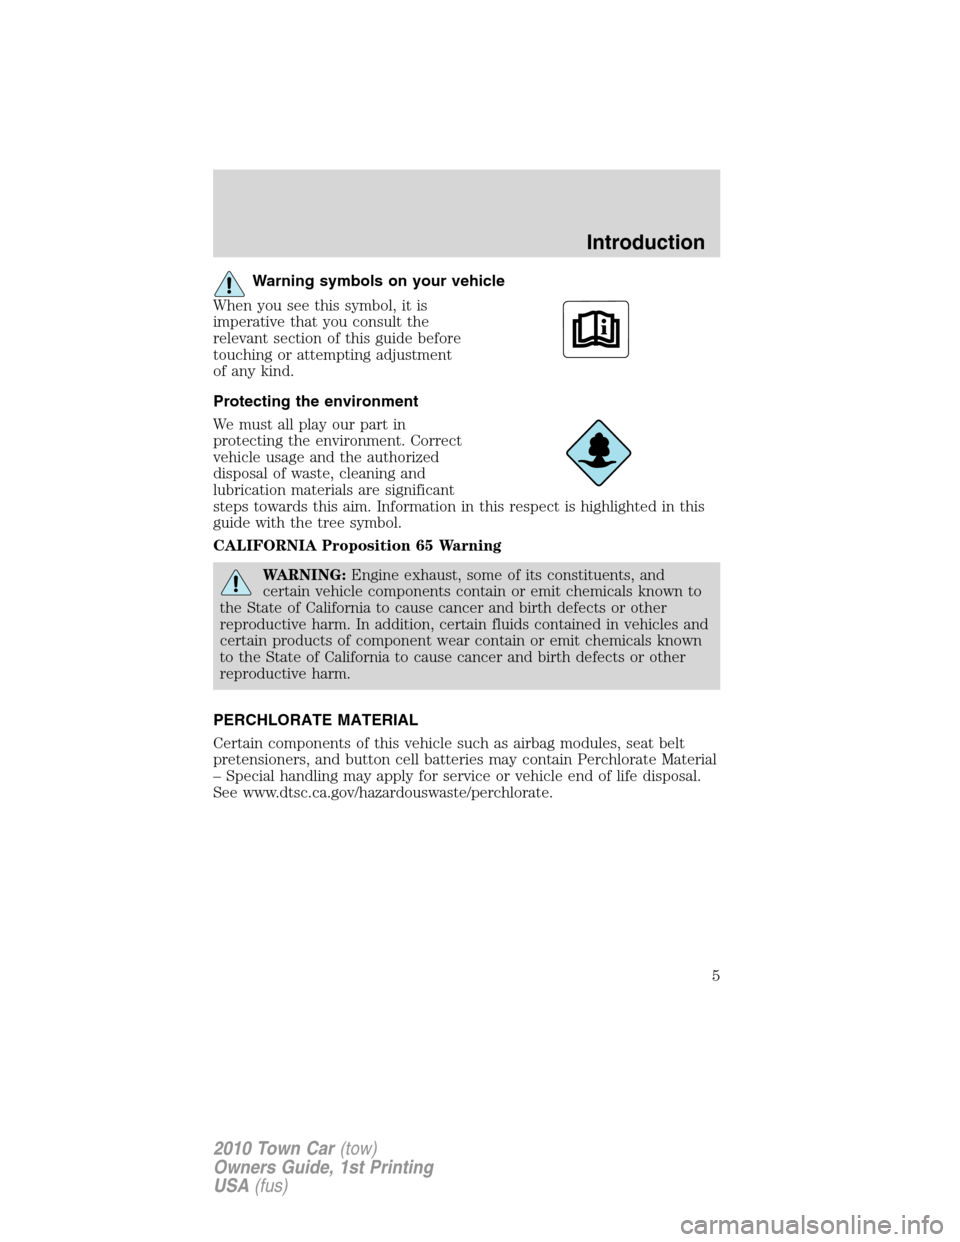 LINCOLN TOWN CAR 2010  Owners Manual, Page 5